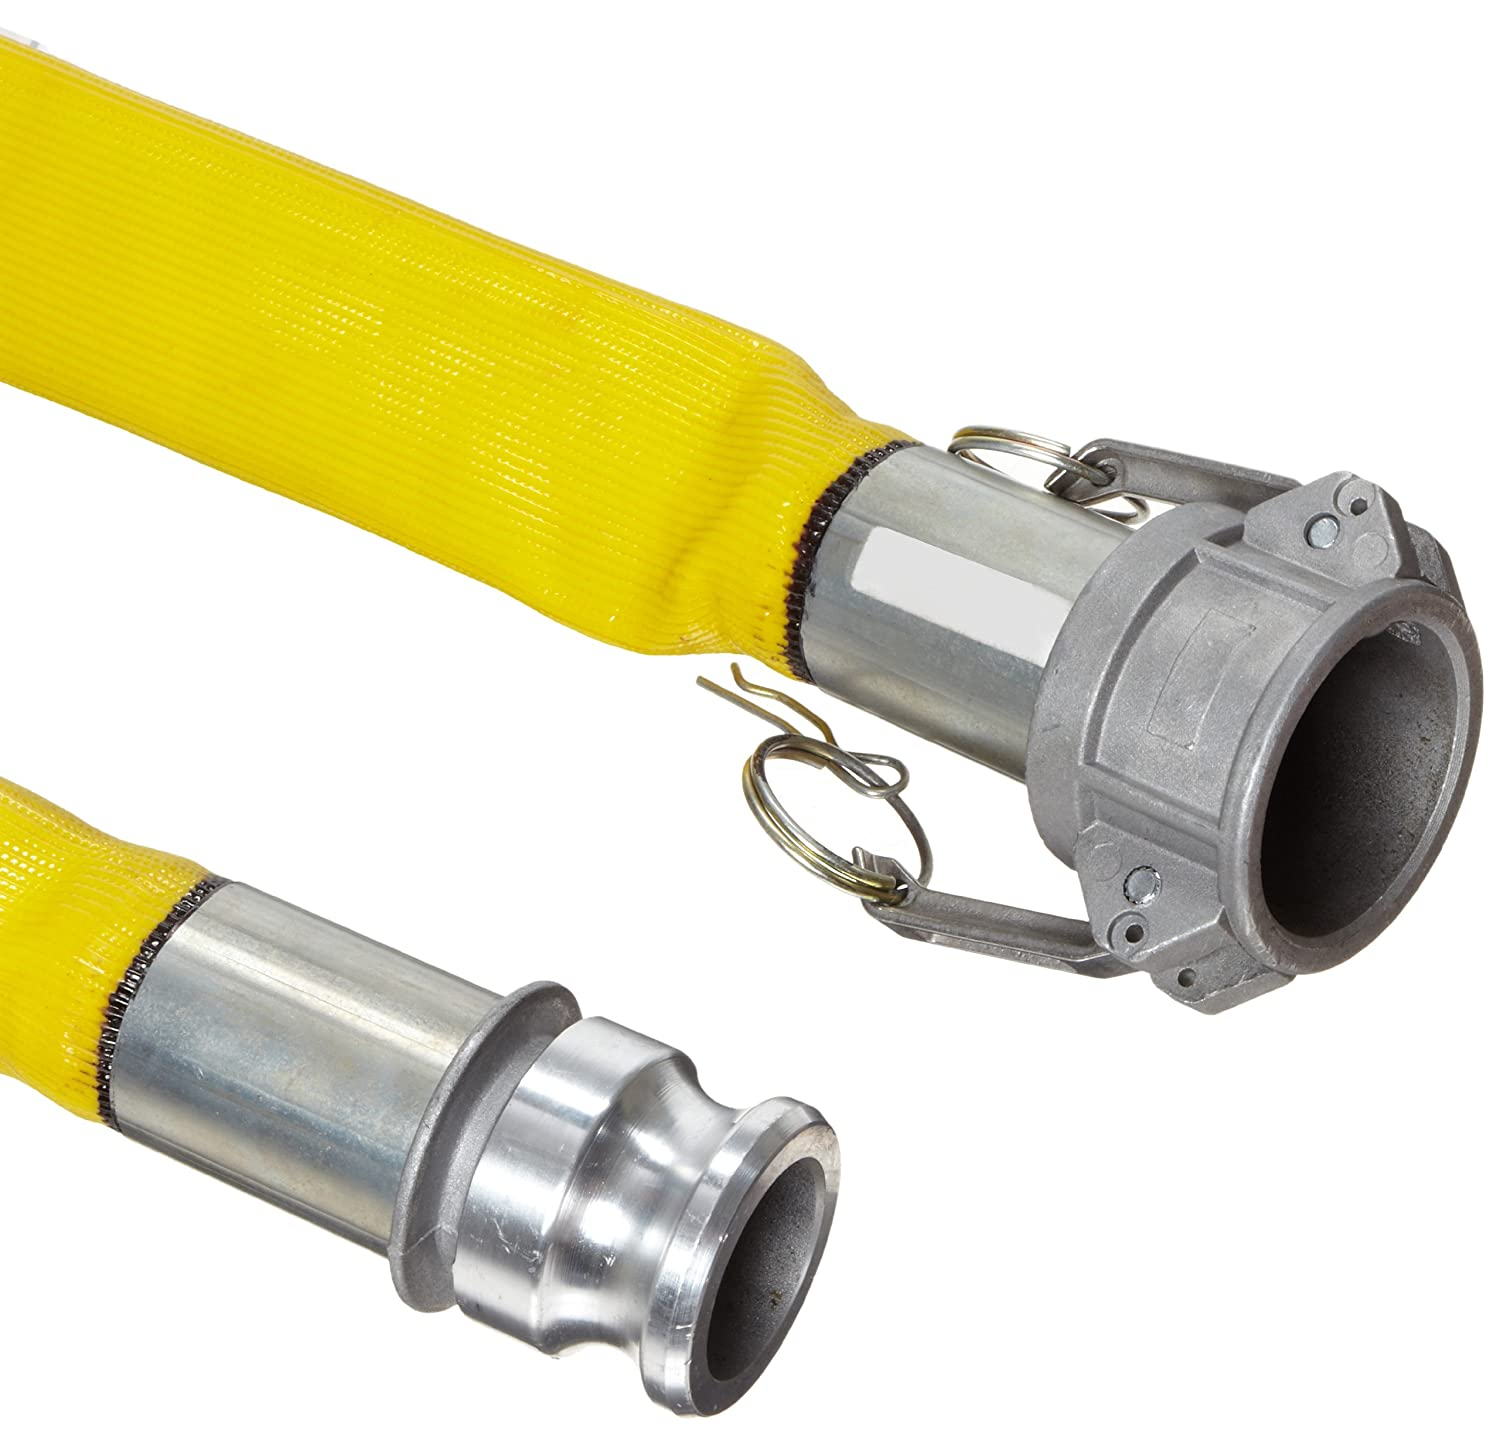 Goodyear EP Spiraflex Yellow PVC Suction/Discharge Hose Assembly, 1-1/2